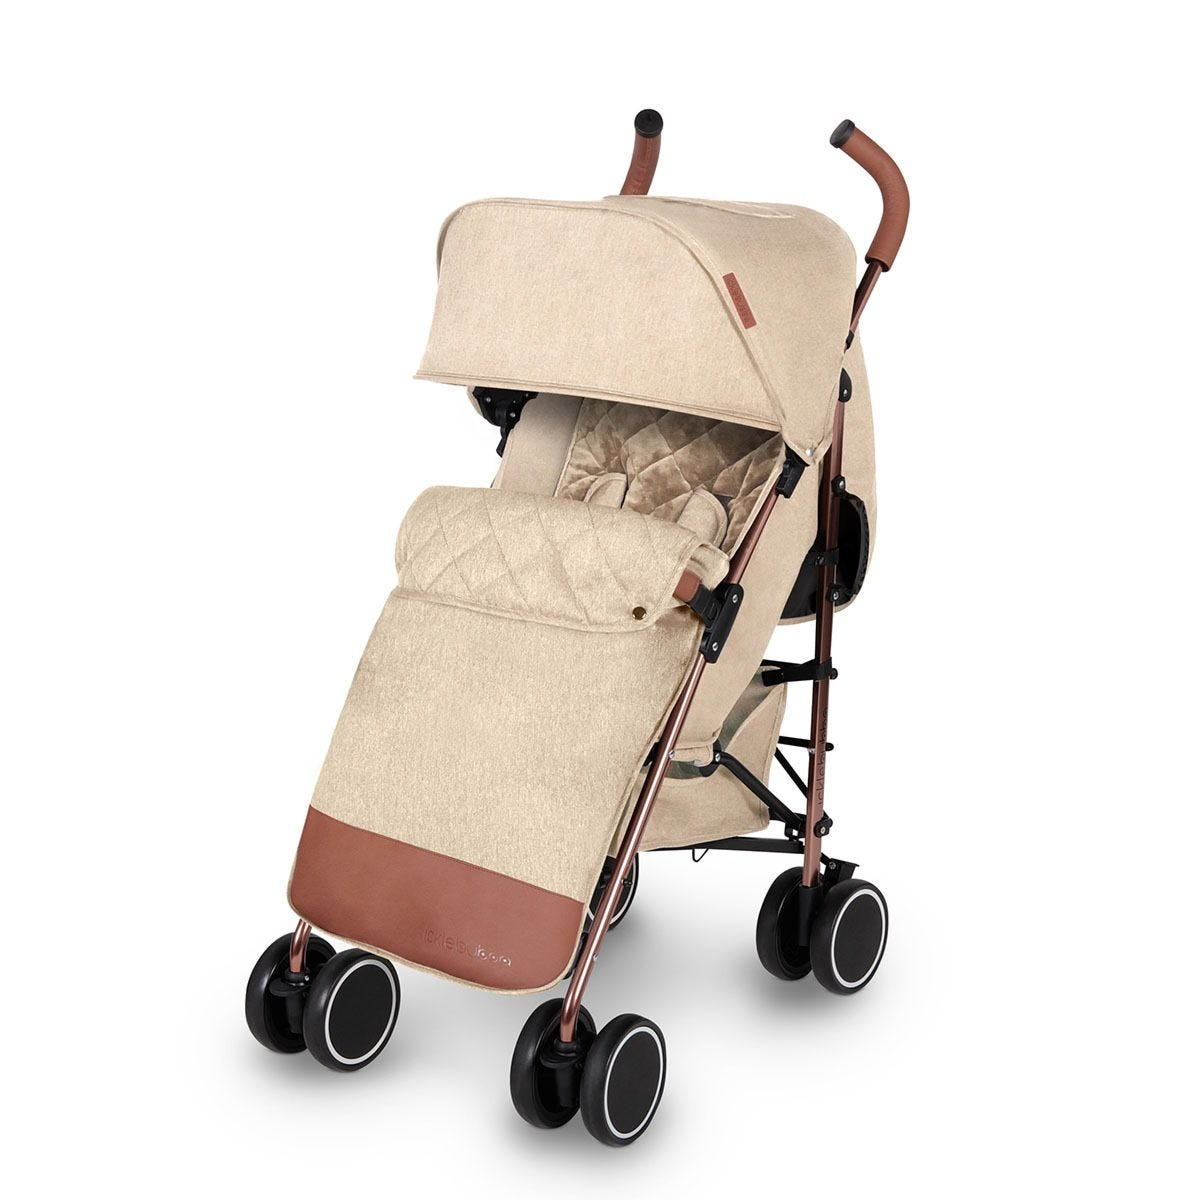 Ickle Bubba Discovery Max Stroller - Cream on Rose Gold